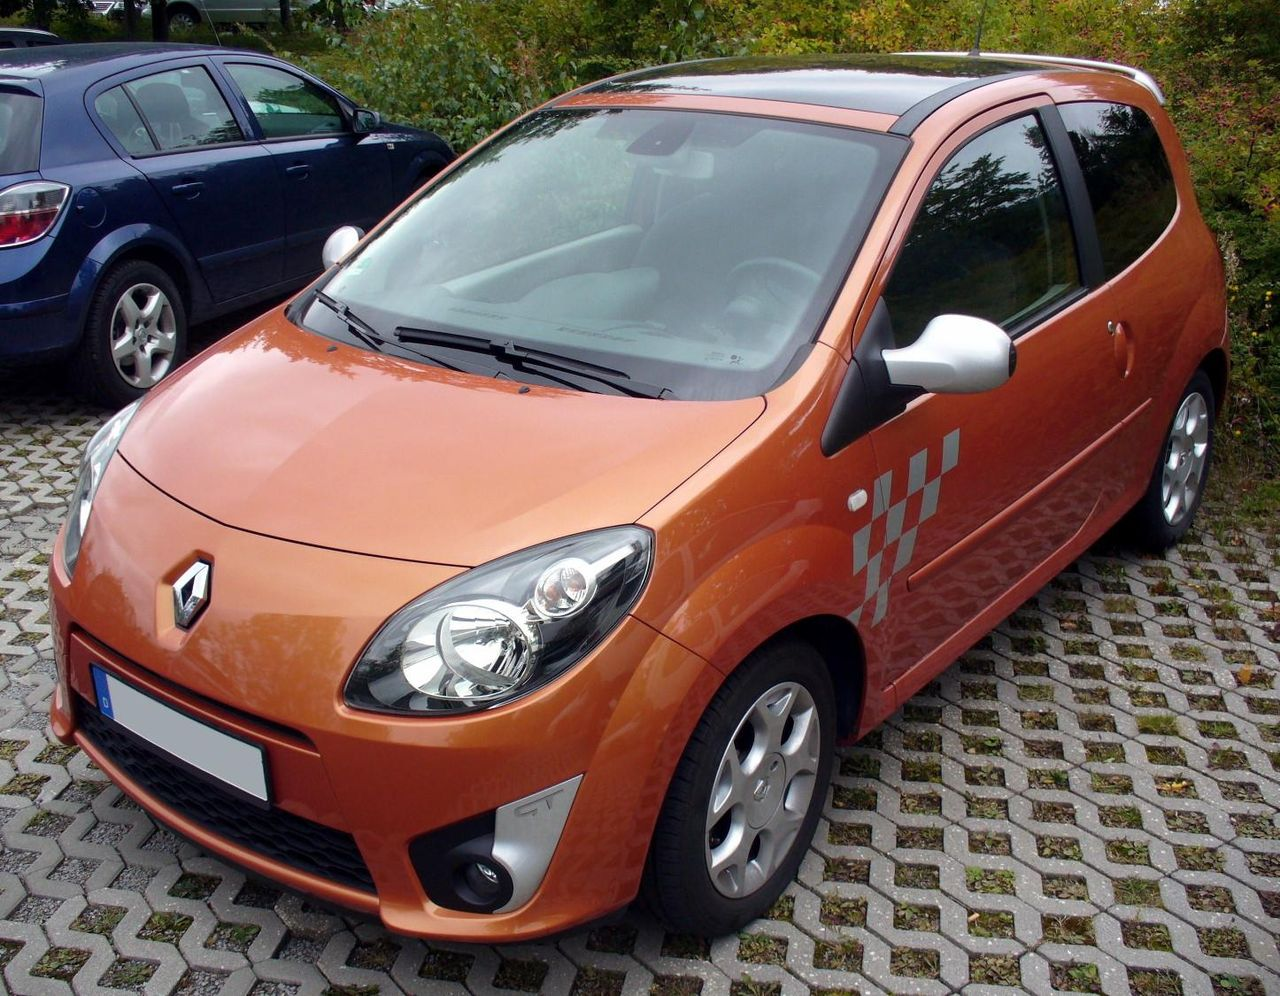 file renault twingo ii phase i gt funkenorange jpg wikimedia commons. Black Bedroom Furniture Sets. Home Design Ideas